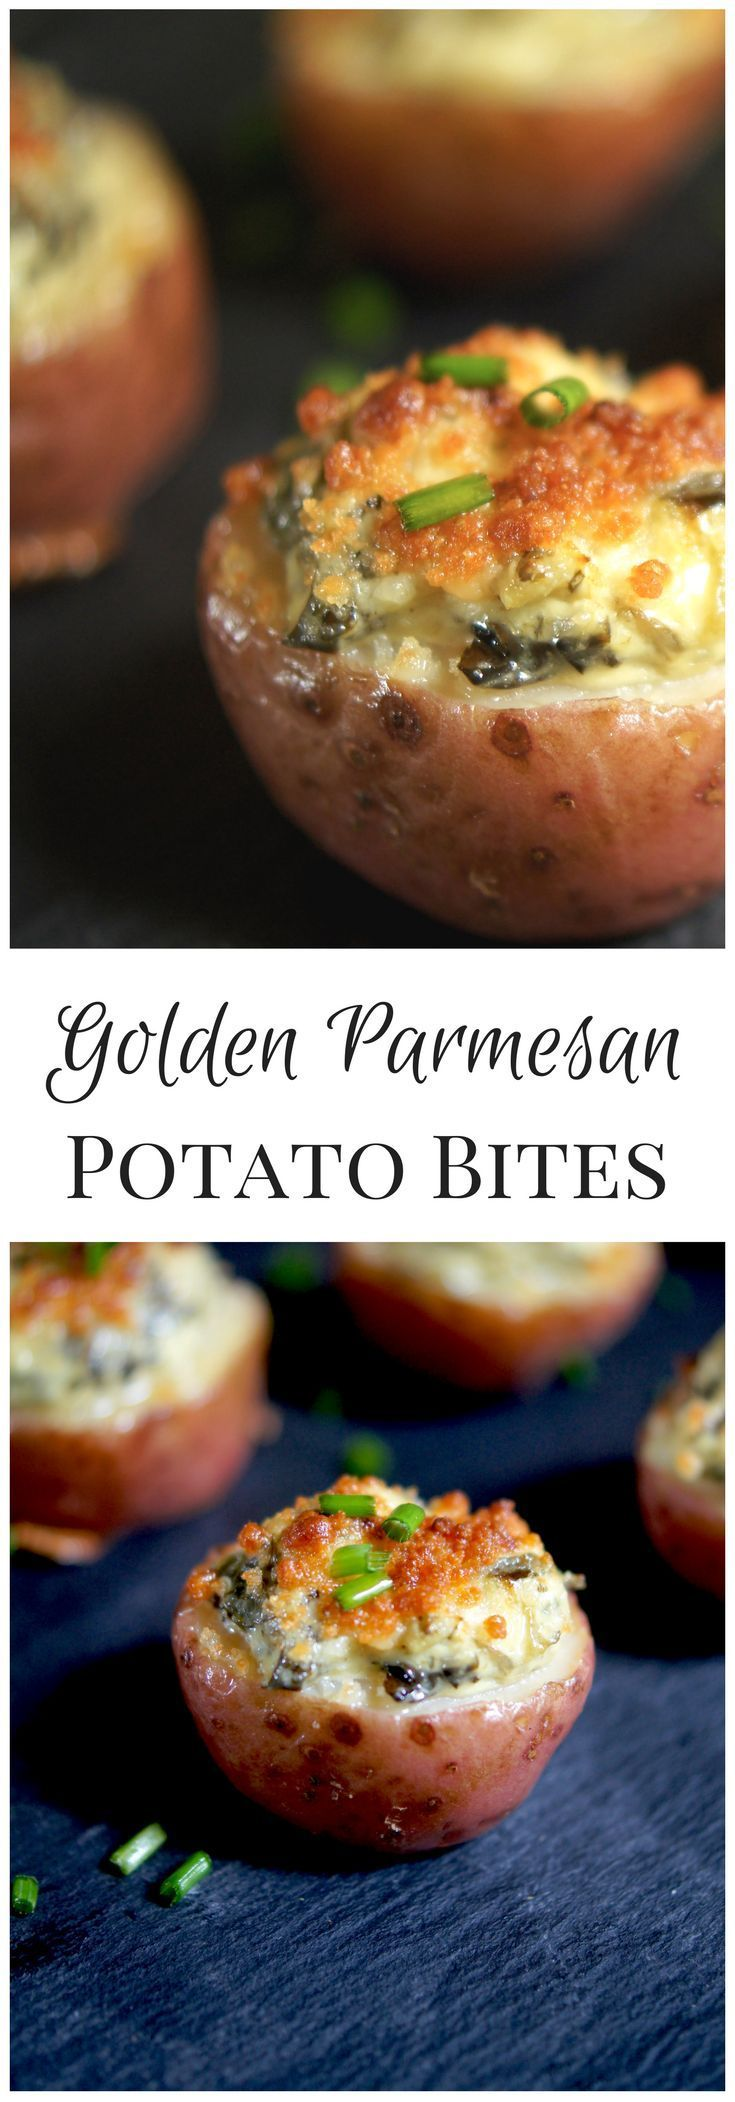 Golden Parmesan Potato Bites: An easy and low-cal New Year's Eve Appetizer or Game Day snack.